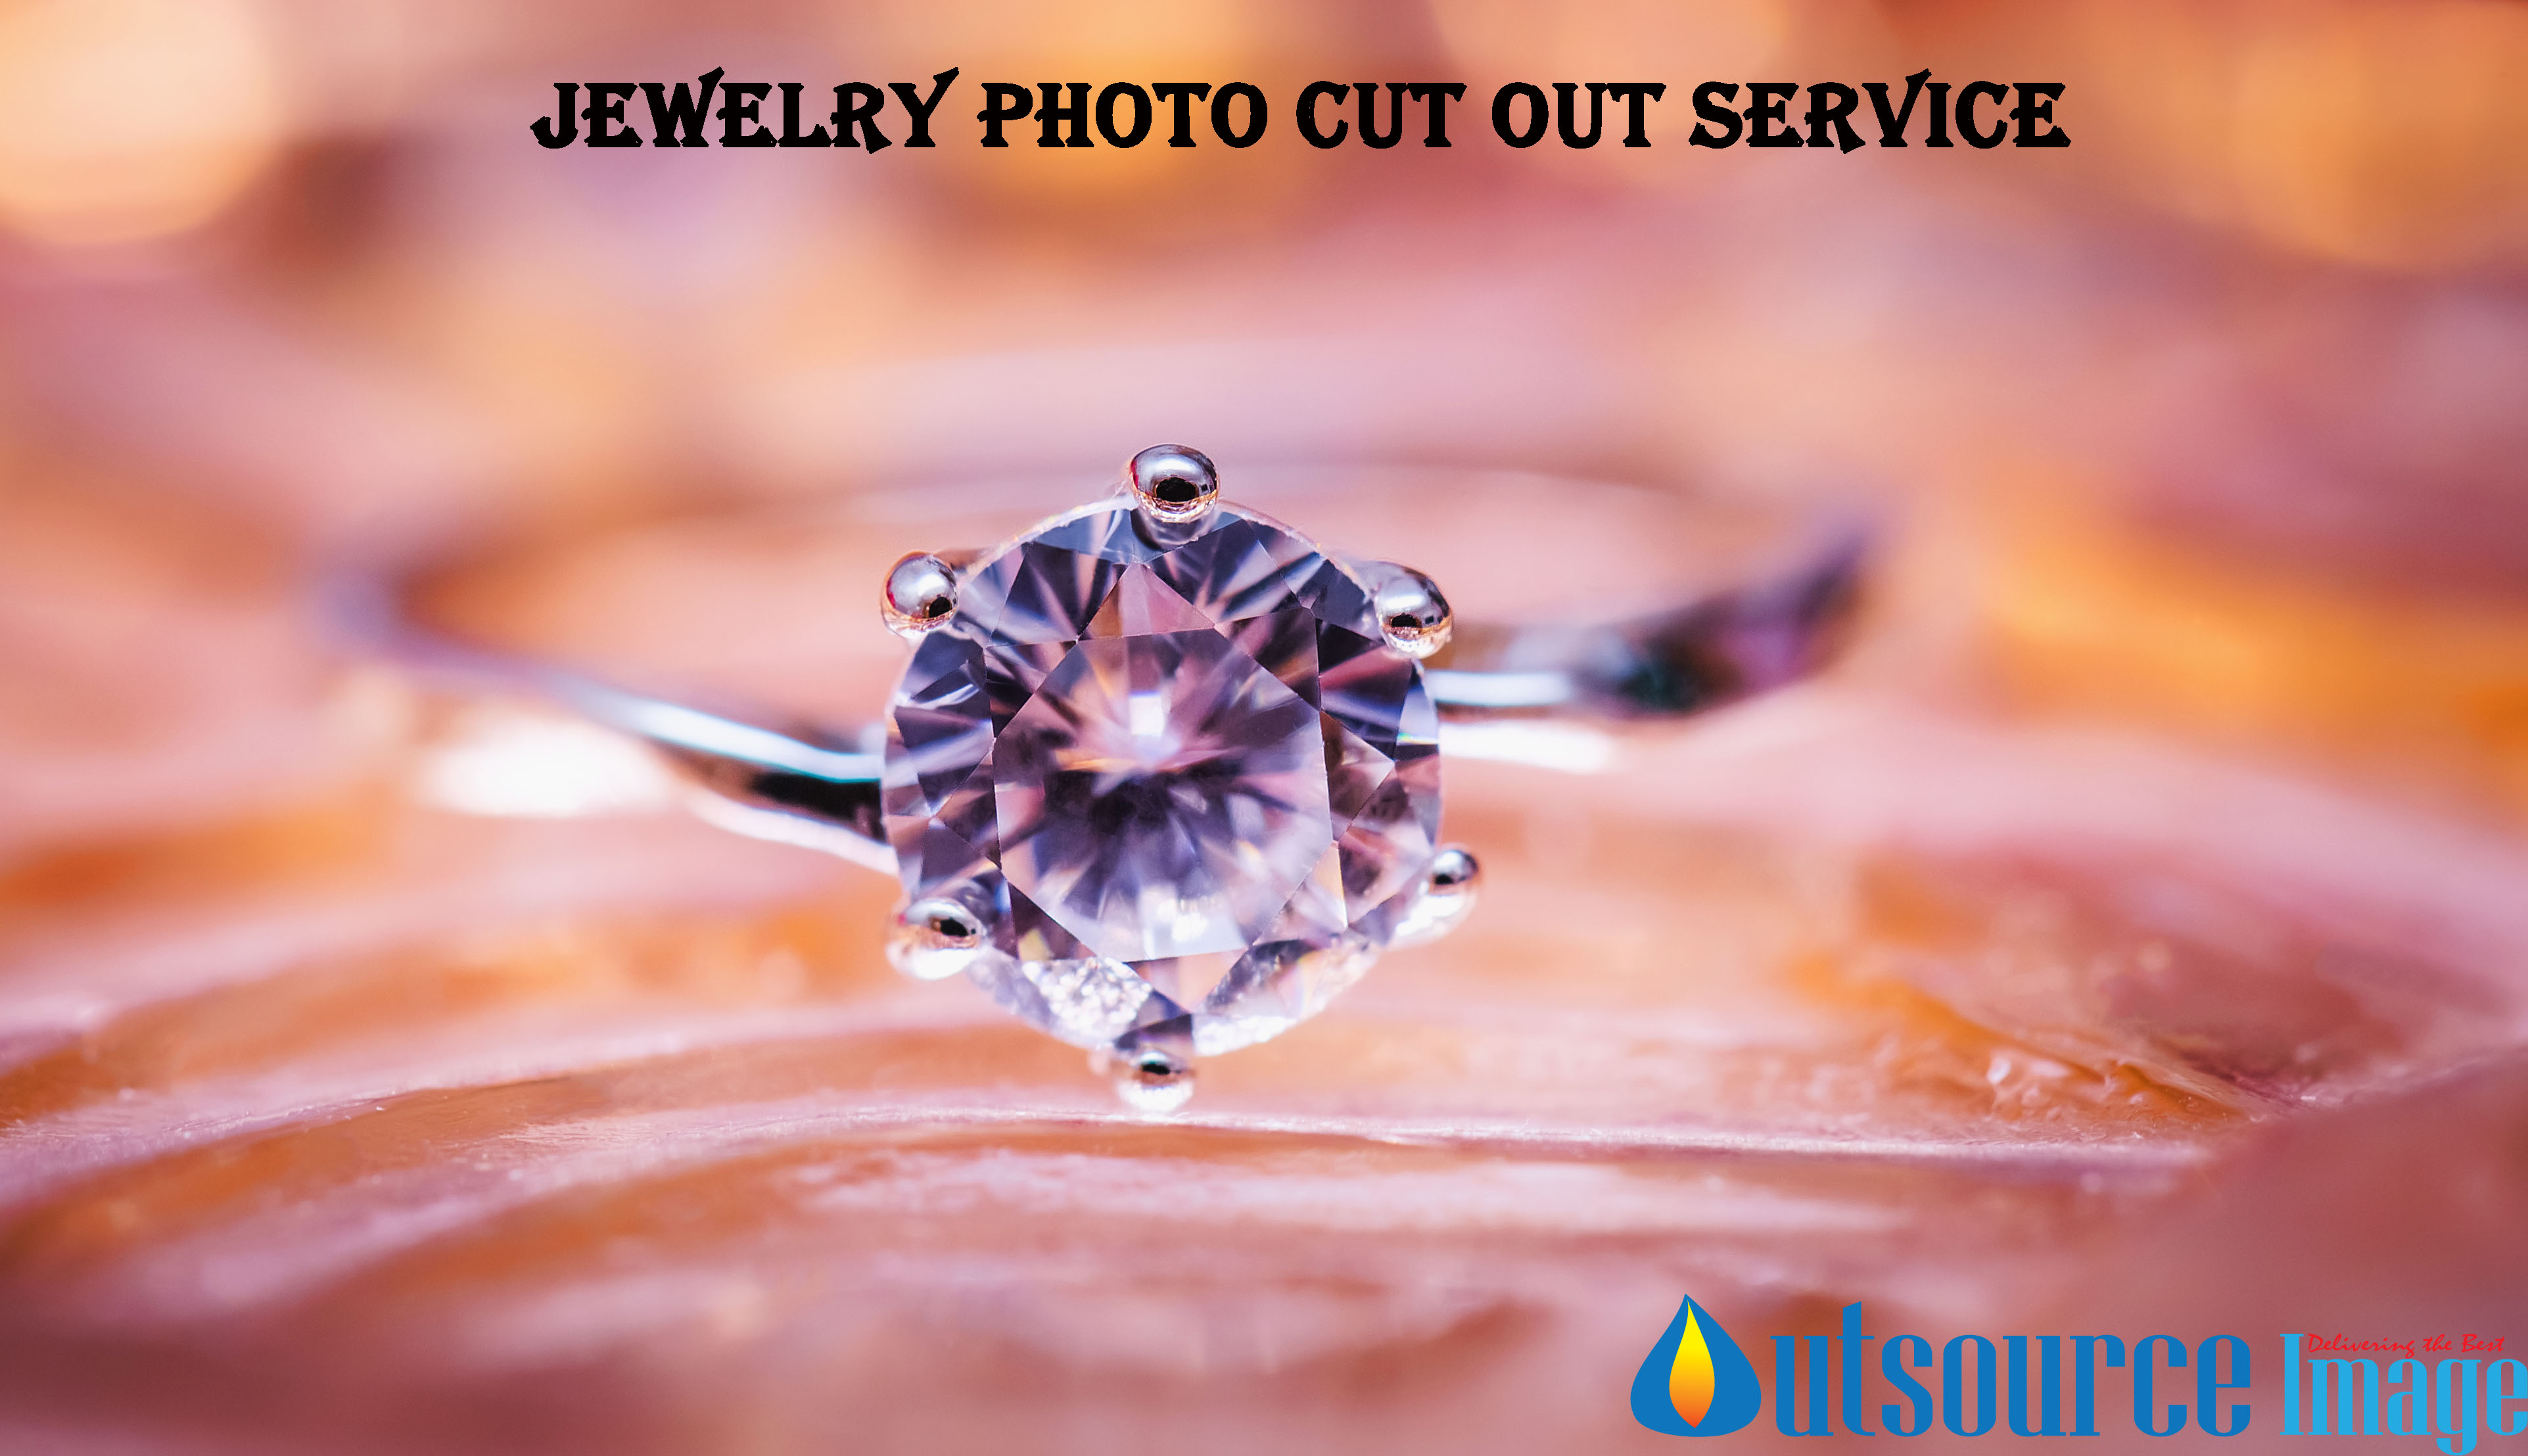 Jewellery Photo Cut Out Services | Jewellery Photo Background Removal